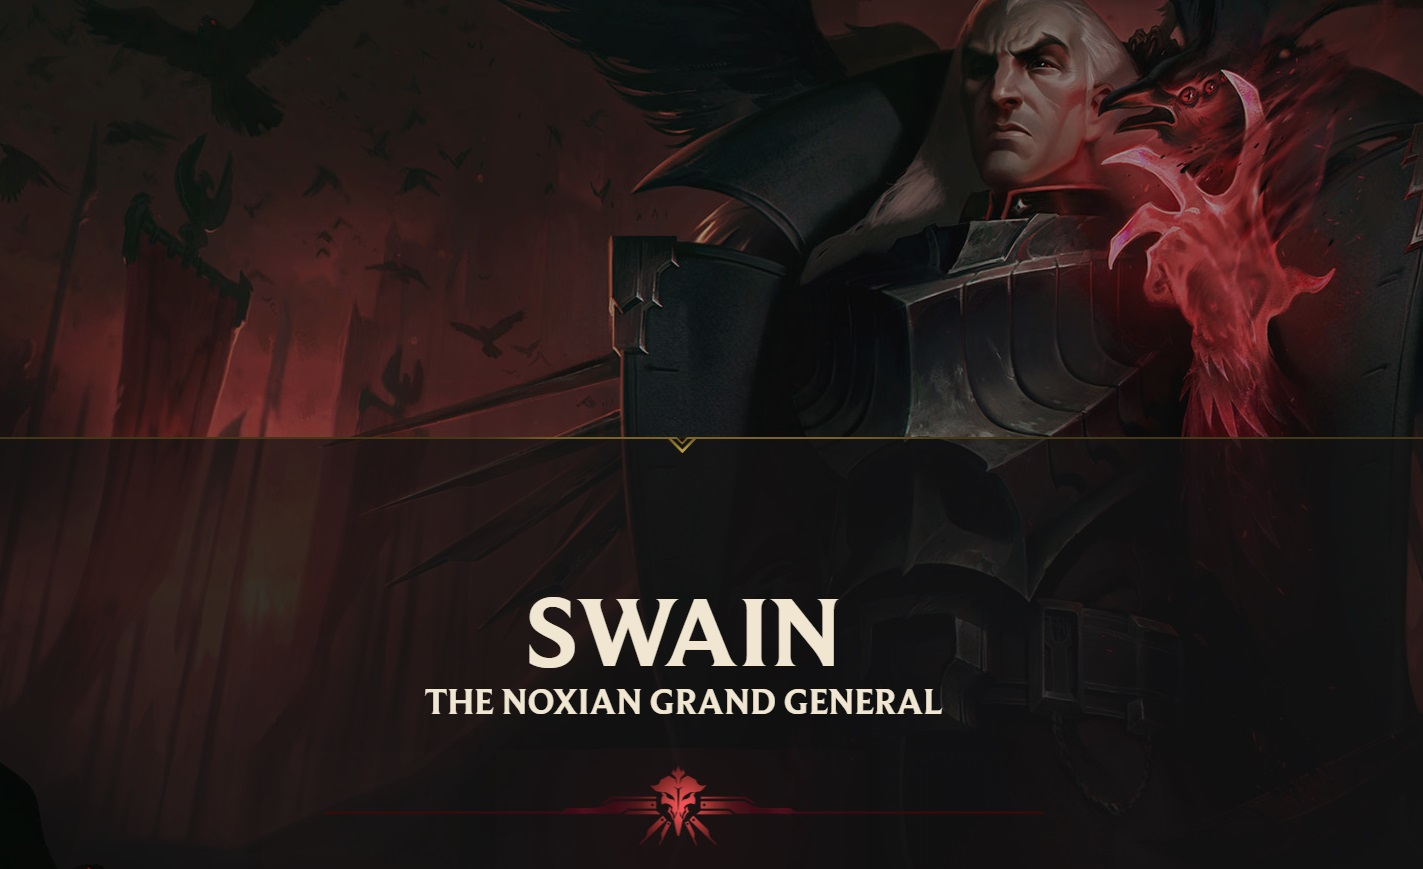 Swain, The Noxian Grand General